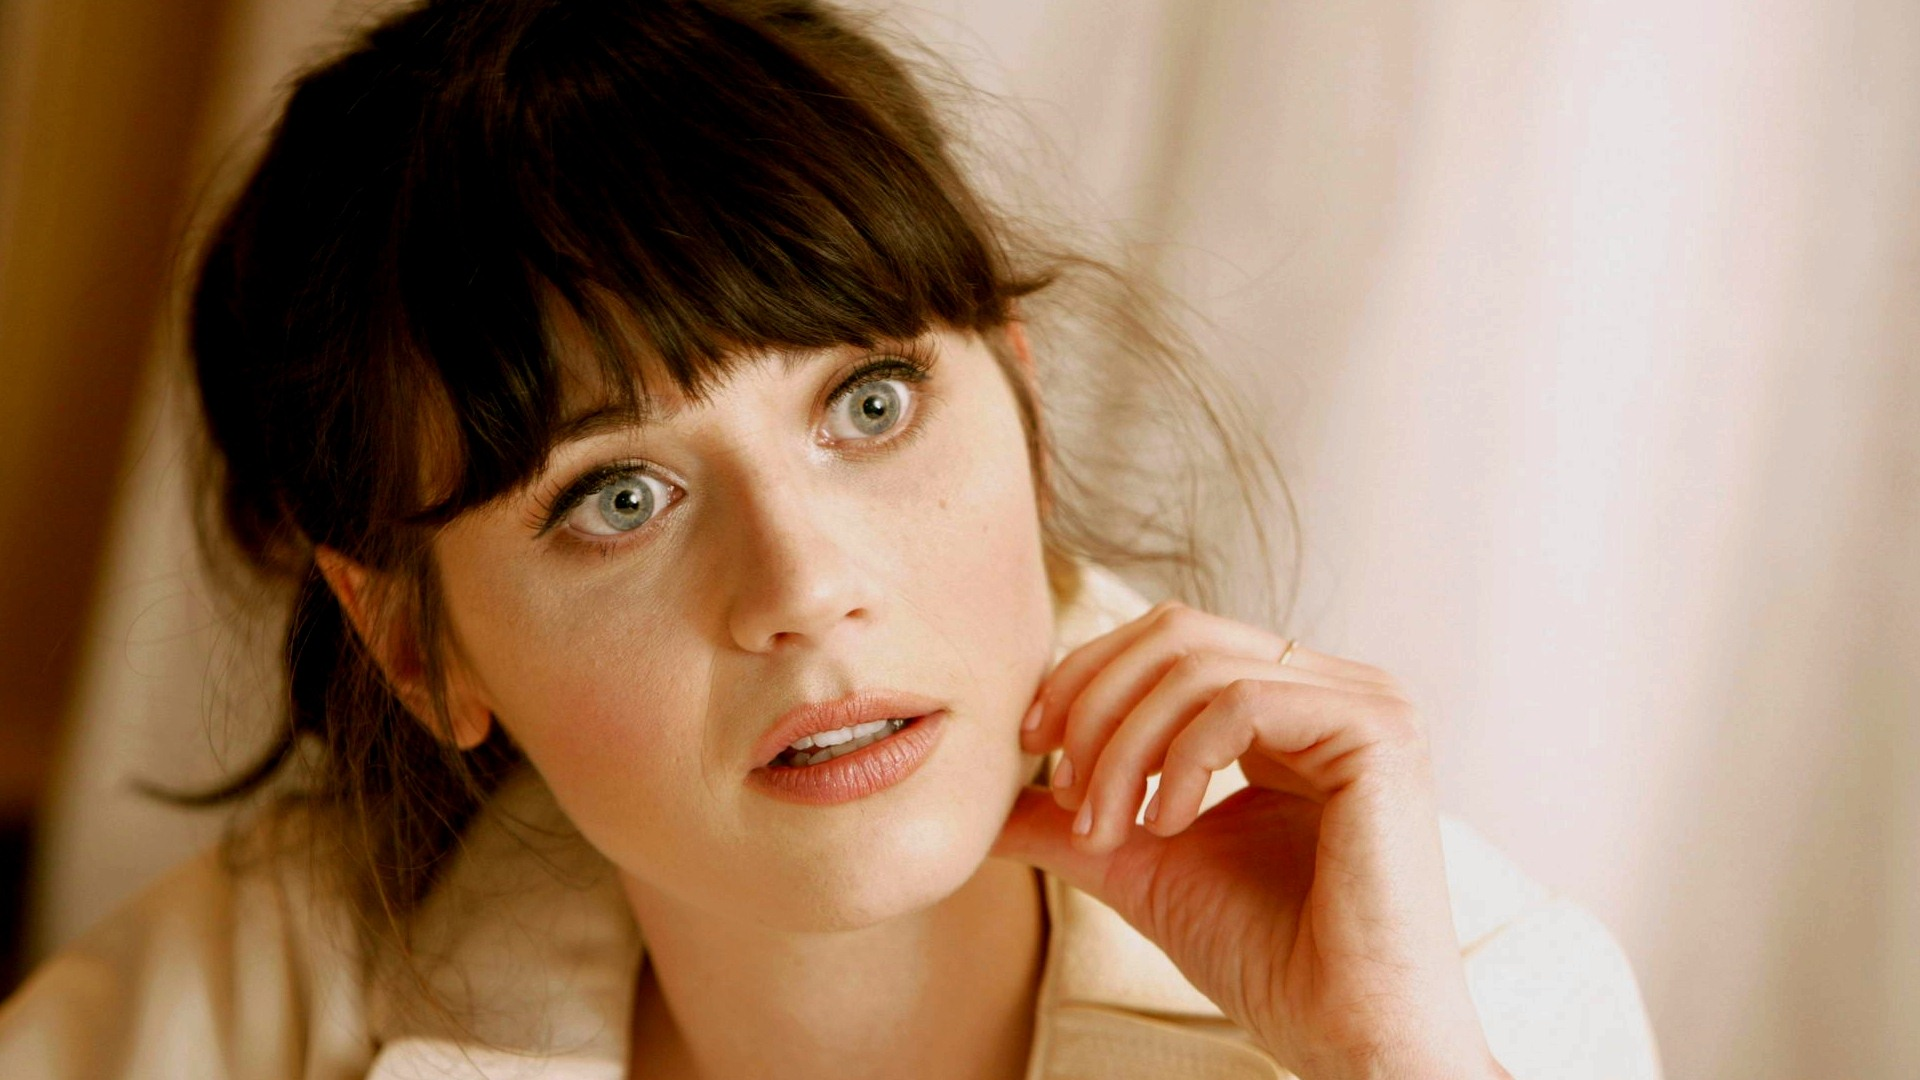 Pretty zooey deschanel lookalike plays on cam 4